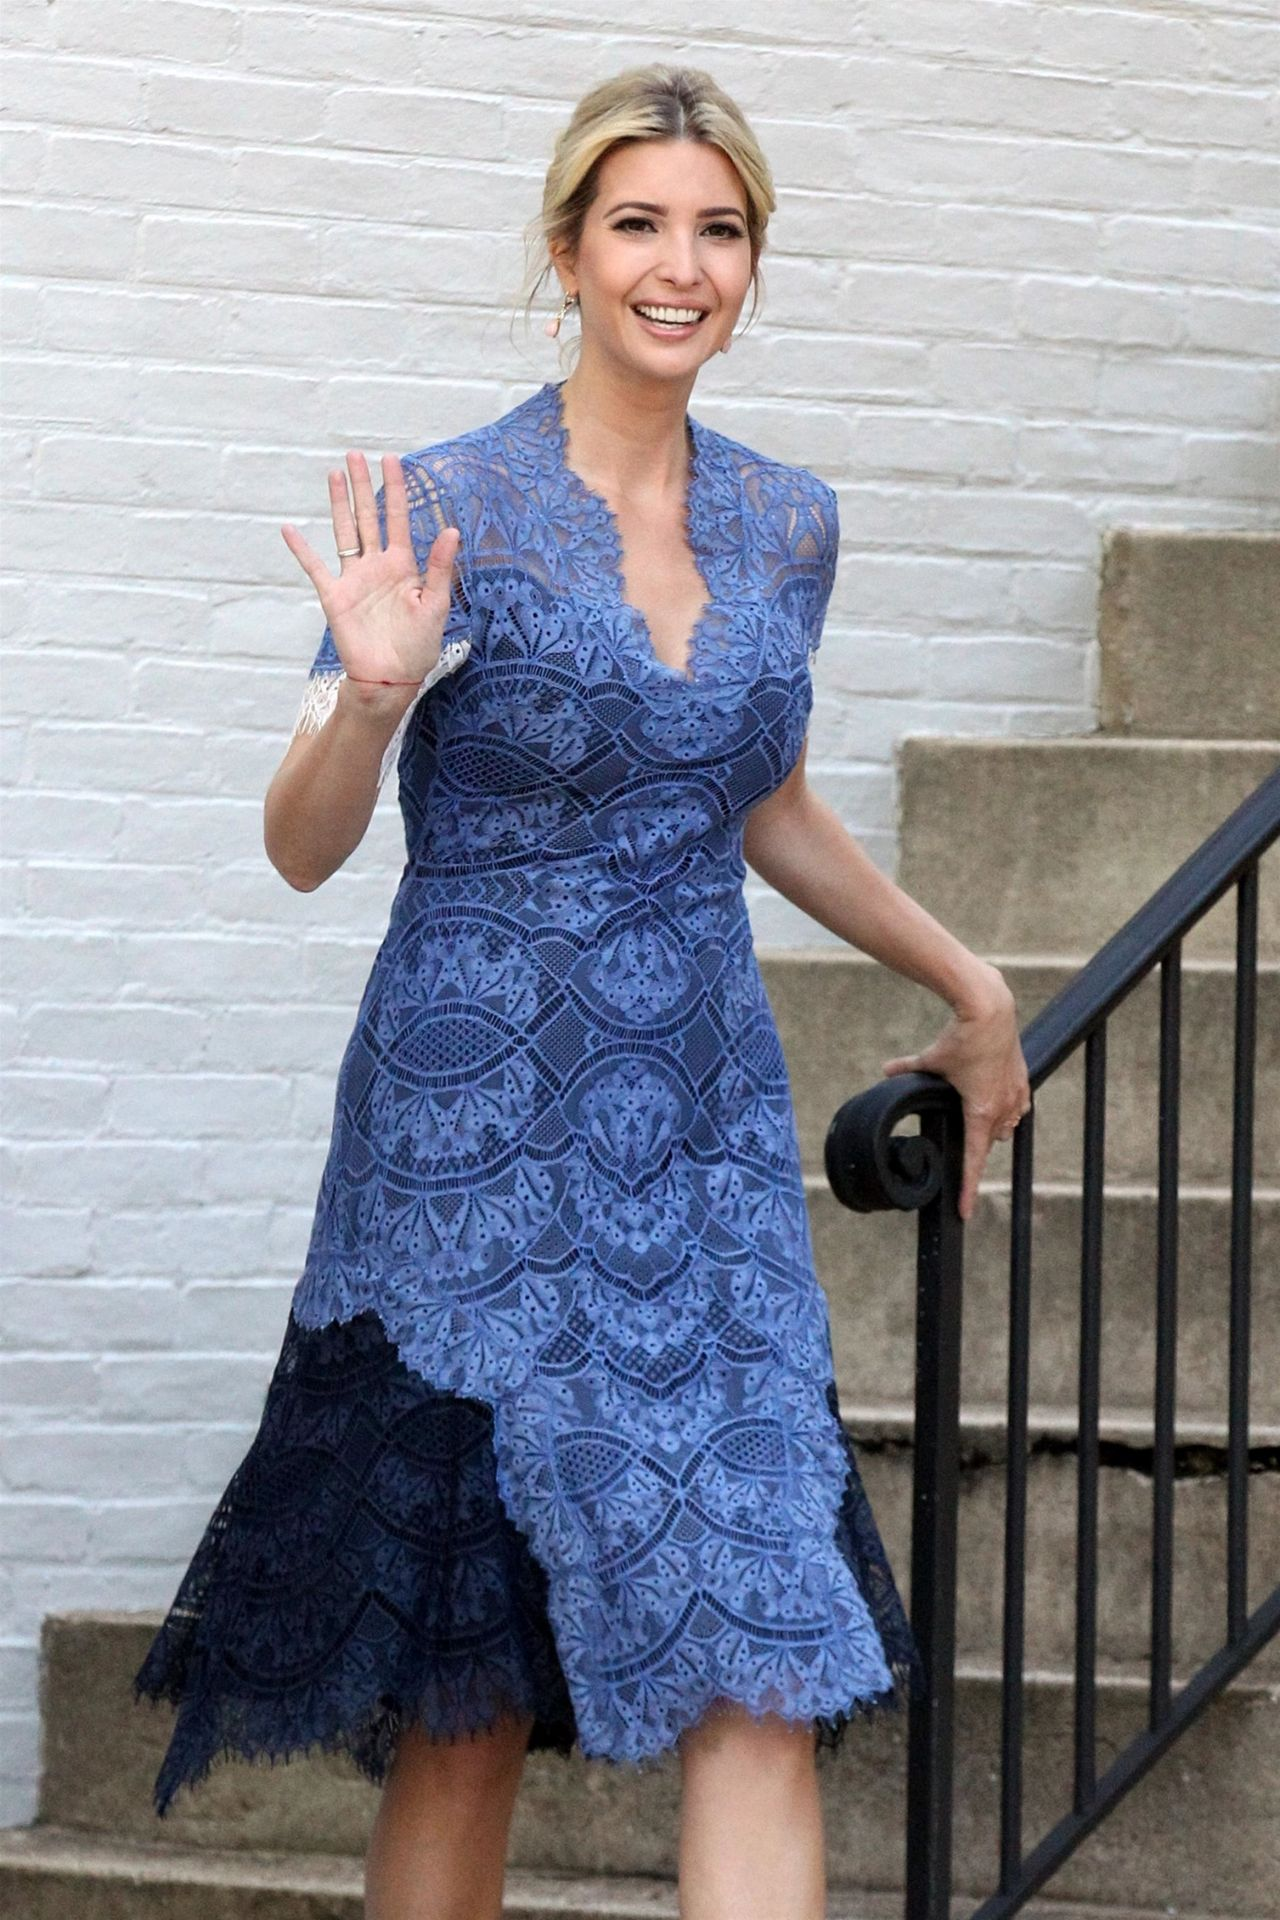 Ivanka Trump in a Blue Summer Dress - Washington, D.C. 07 ... Ivanka Trump